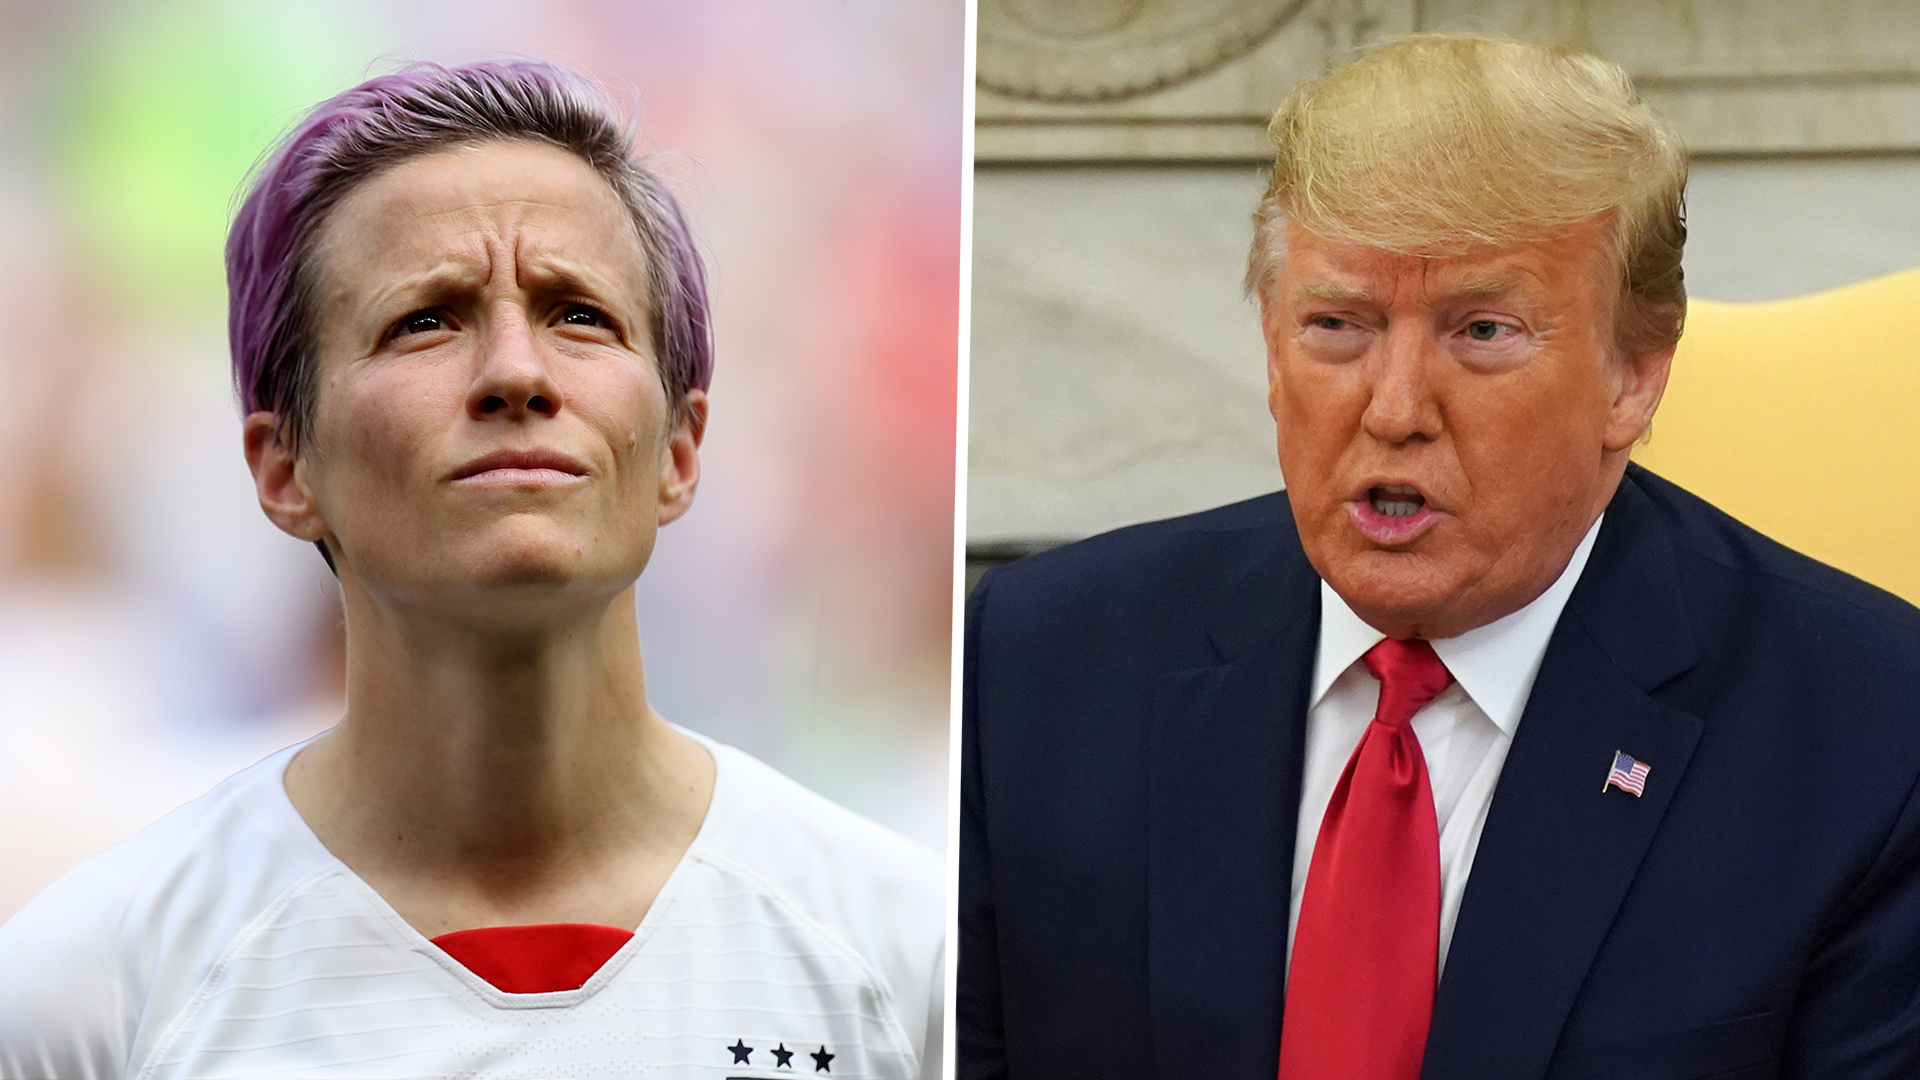 'Woke means you lose' - Trump tears into USWNT's 'leftist maniacs' after failure to win Olympic gold medal